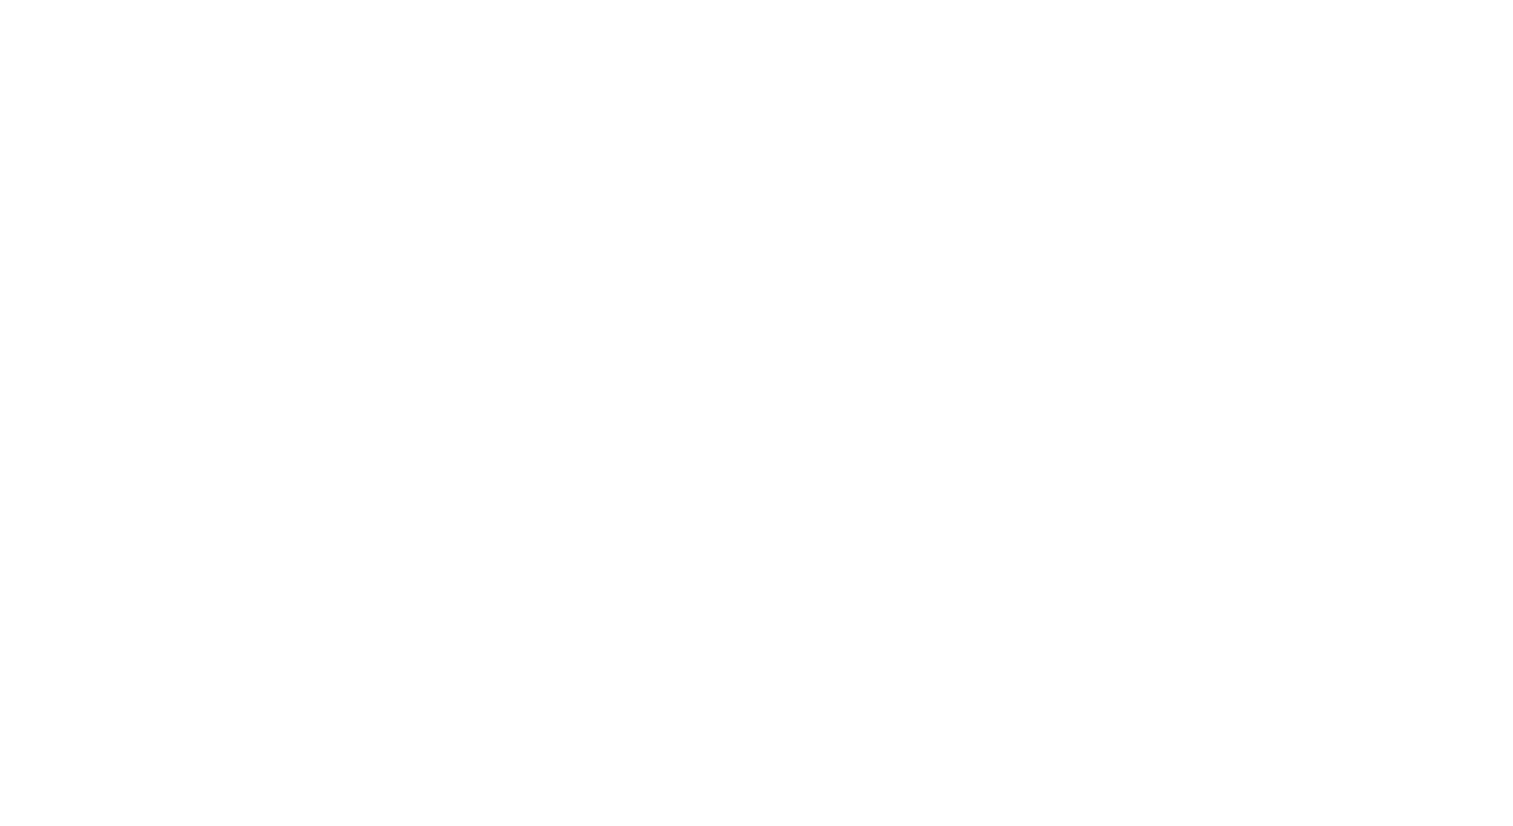 We create a brand identity to move your brand forward